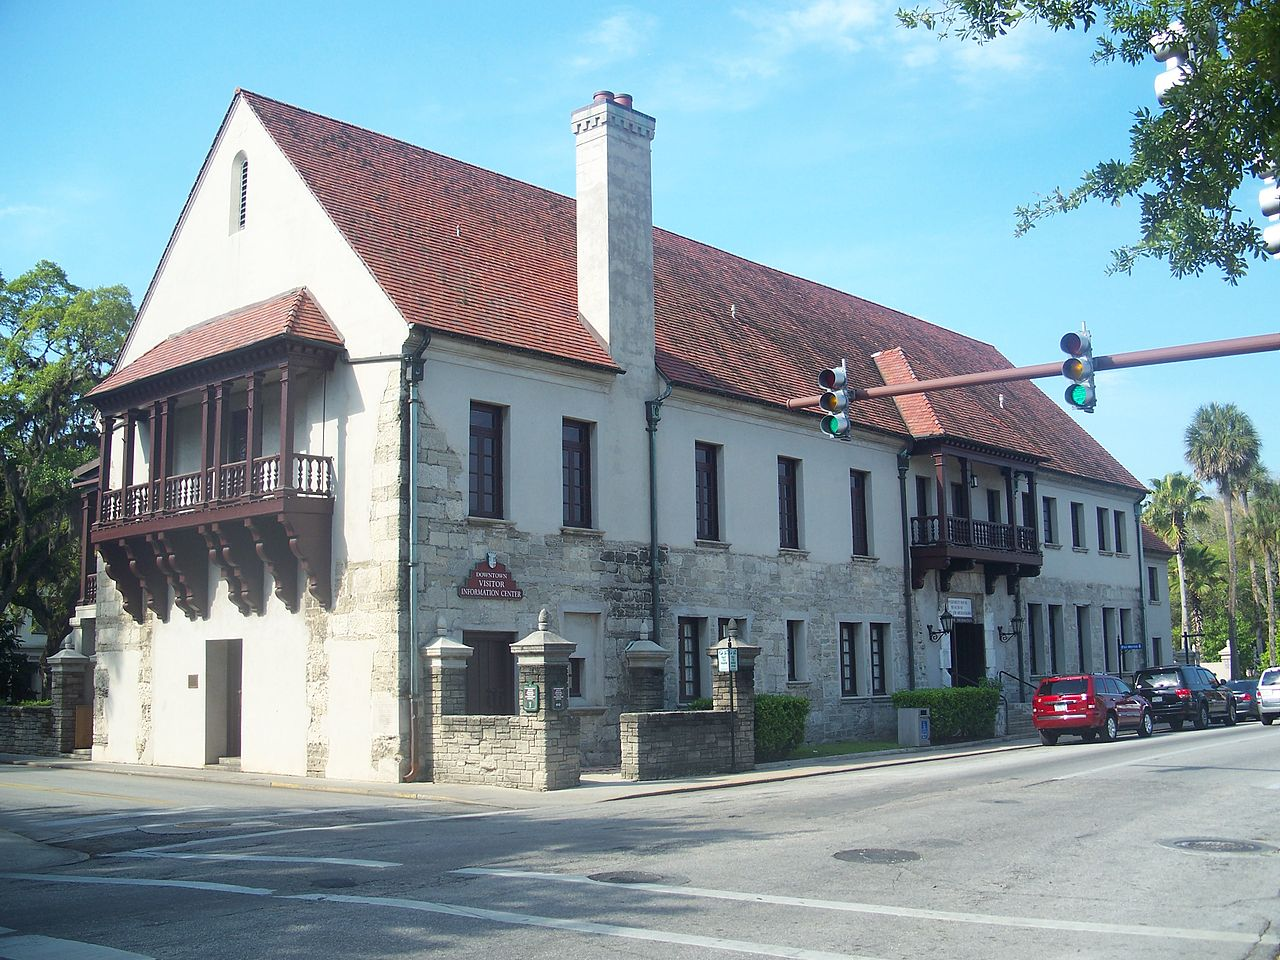 The Government House, which has been at this location and rebuilt on several occasions, was first constructed in 1565.